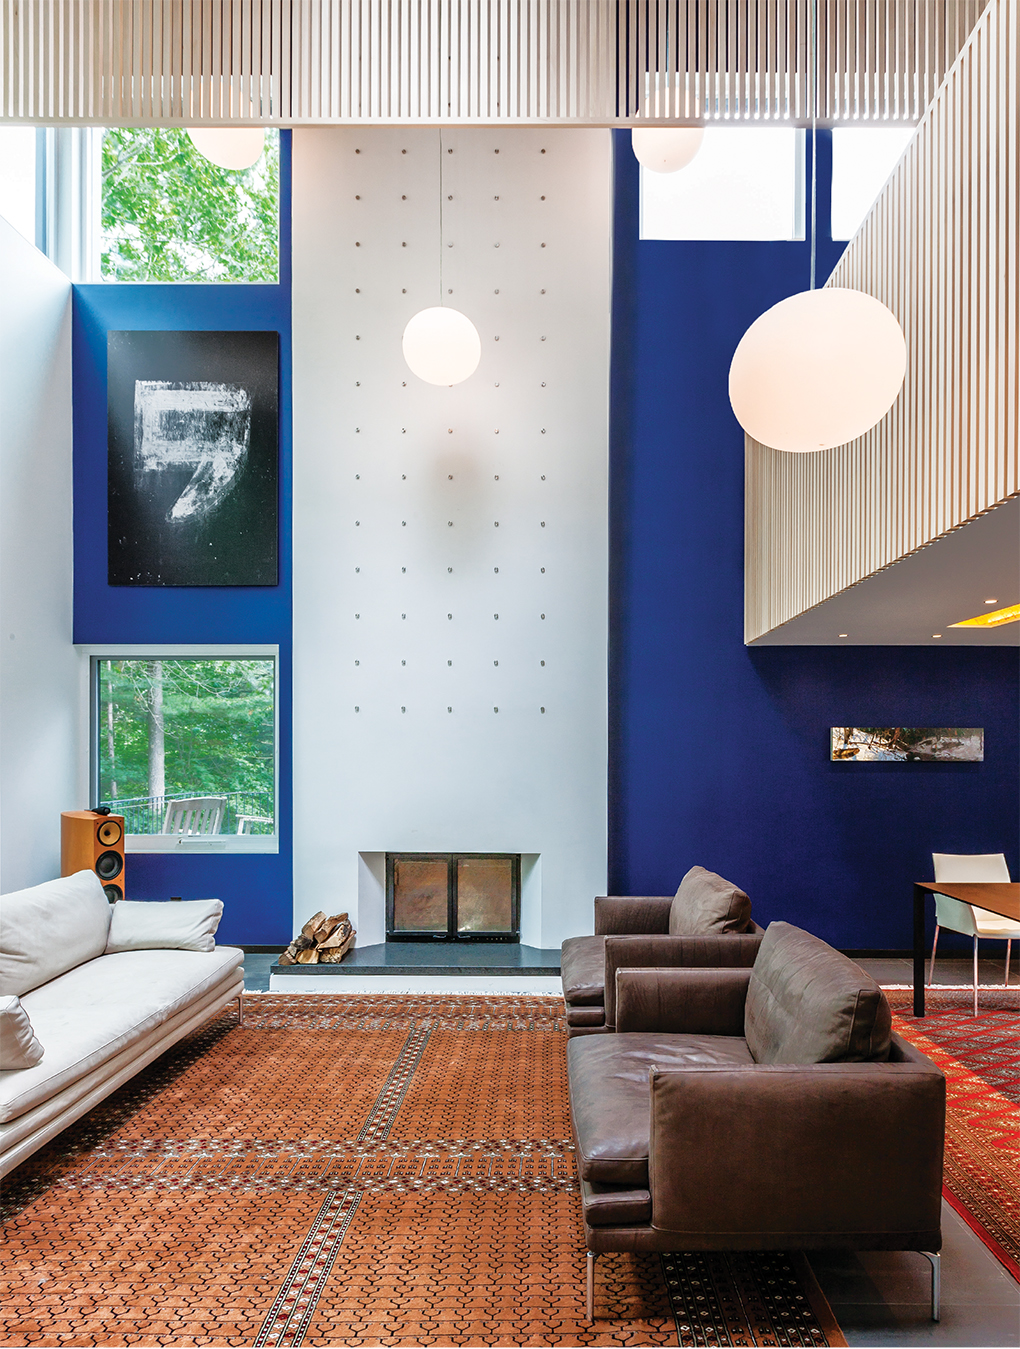 Soaring 22-feet high and embracing the view, the living room is the visual centerpiece of the house.